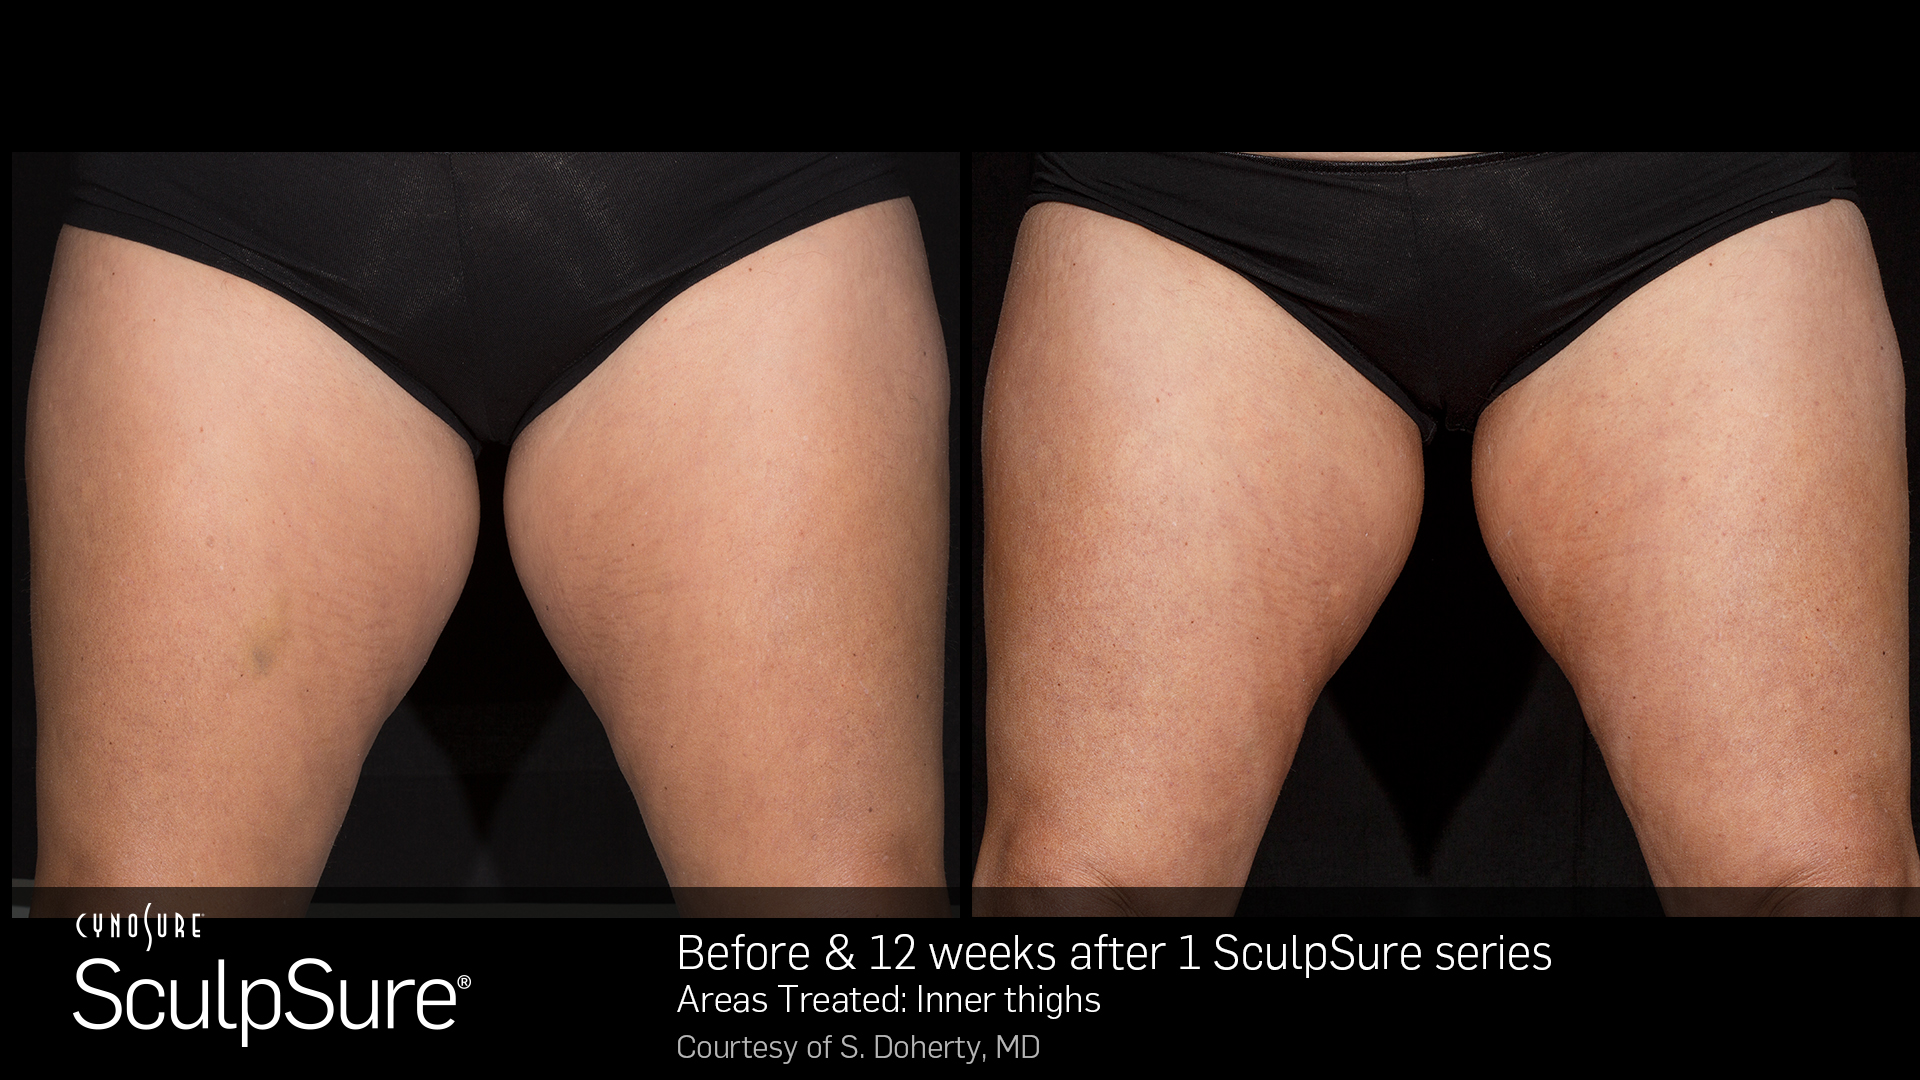 BA_SculpSure_S.Doherty_InnerThigh_1tx_12weeks_KH (1)